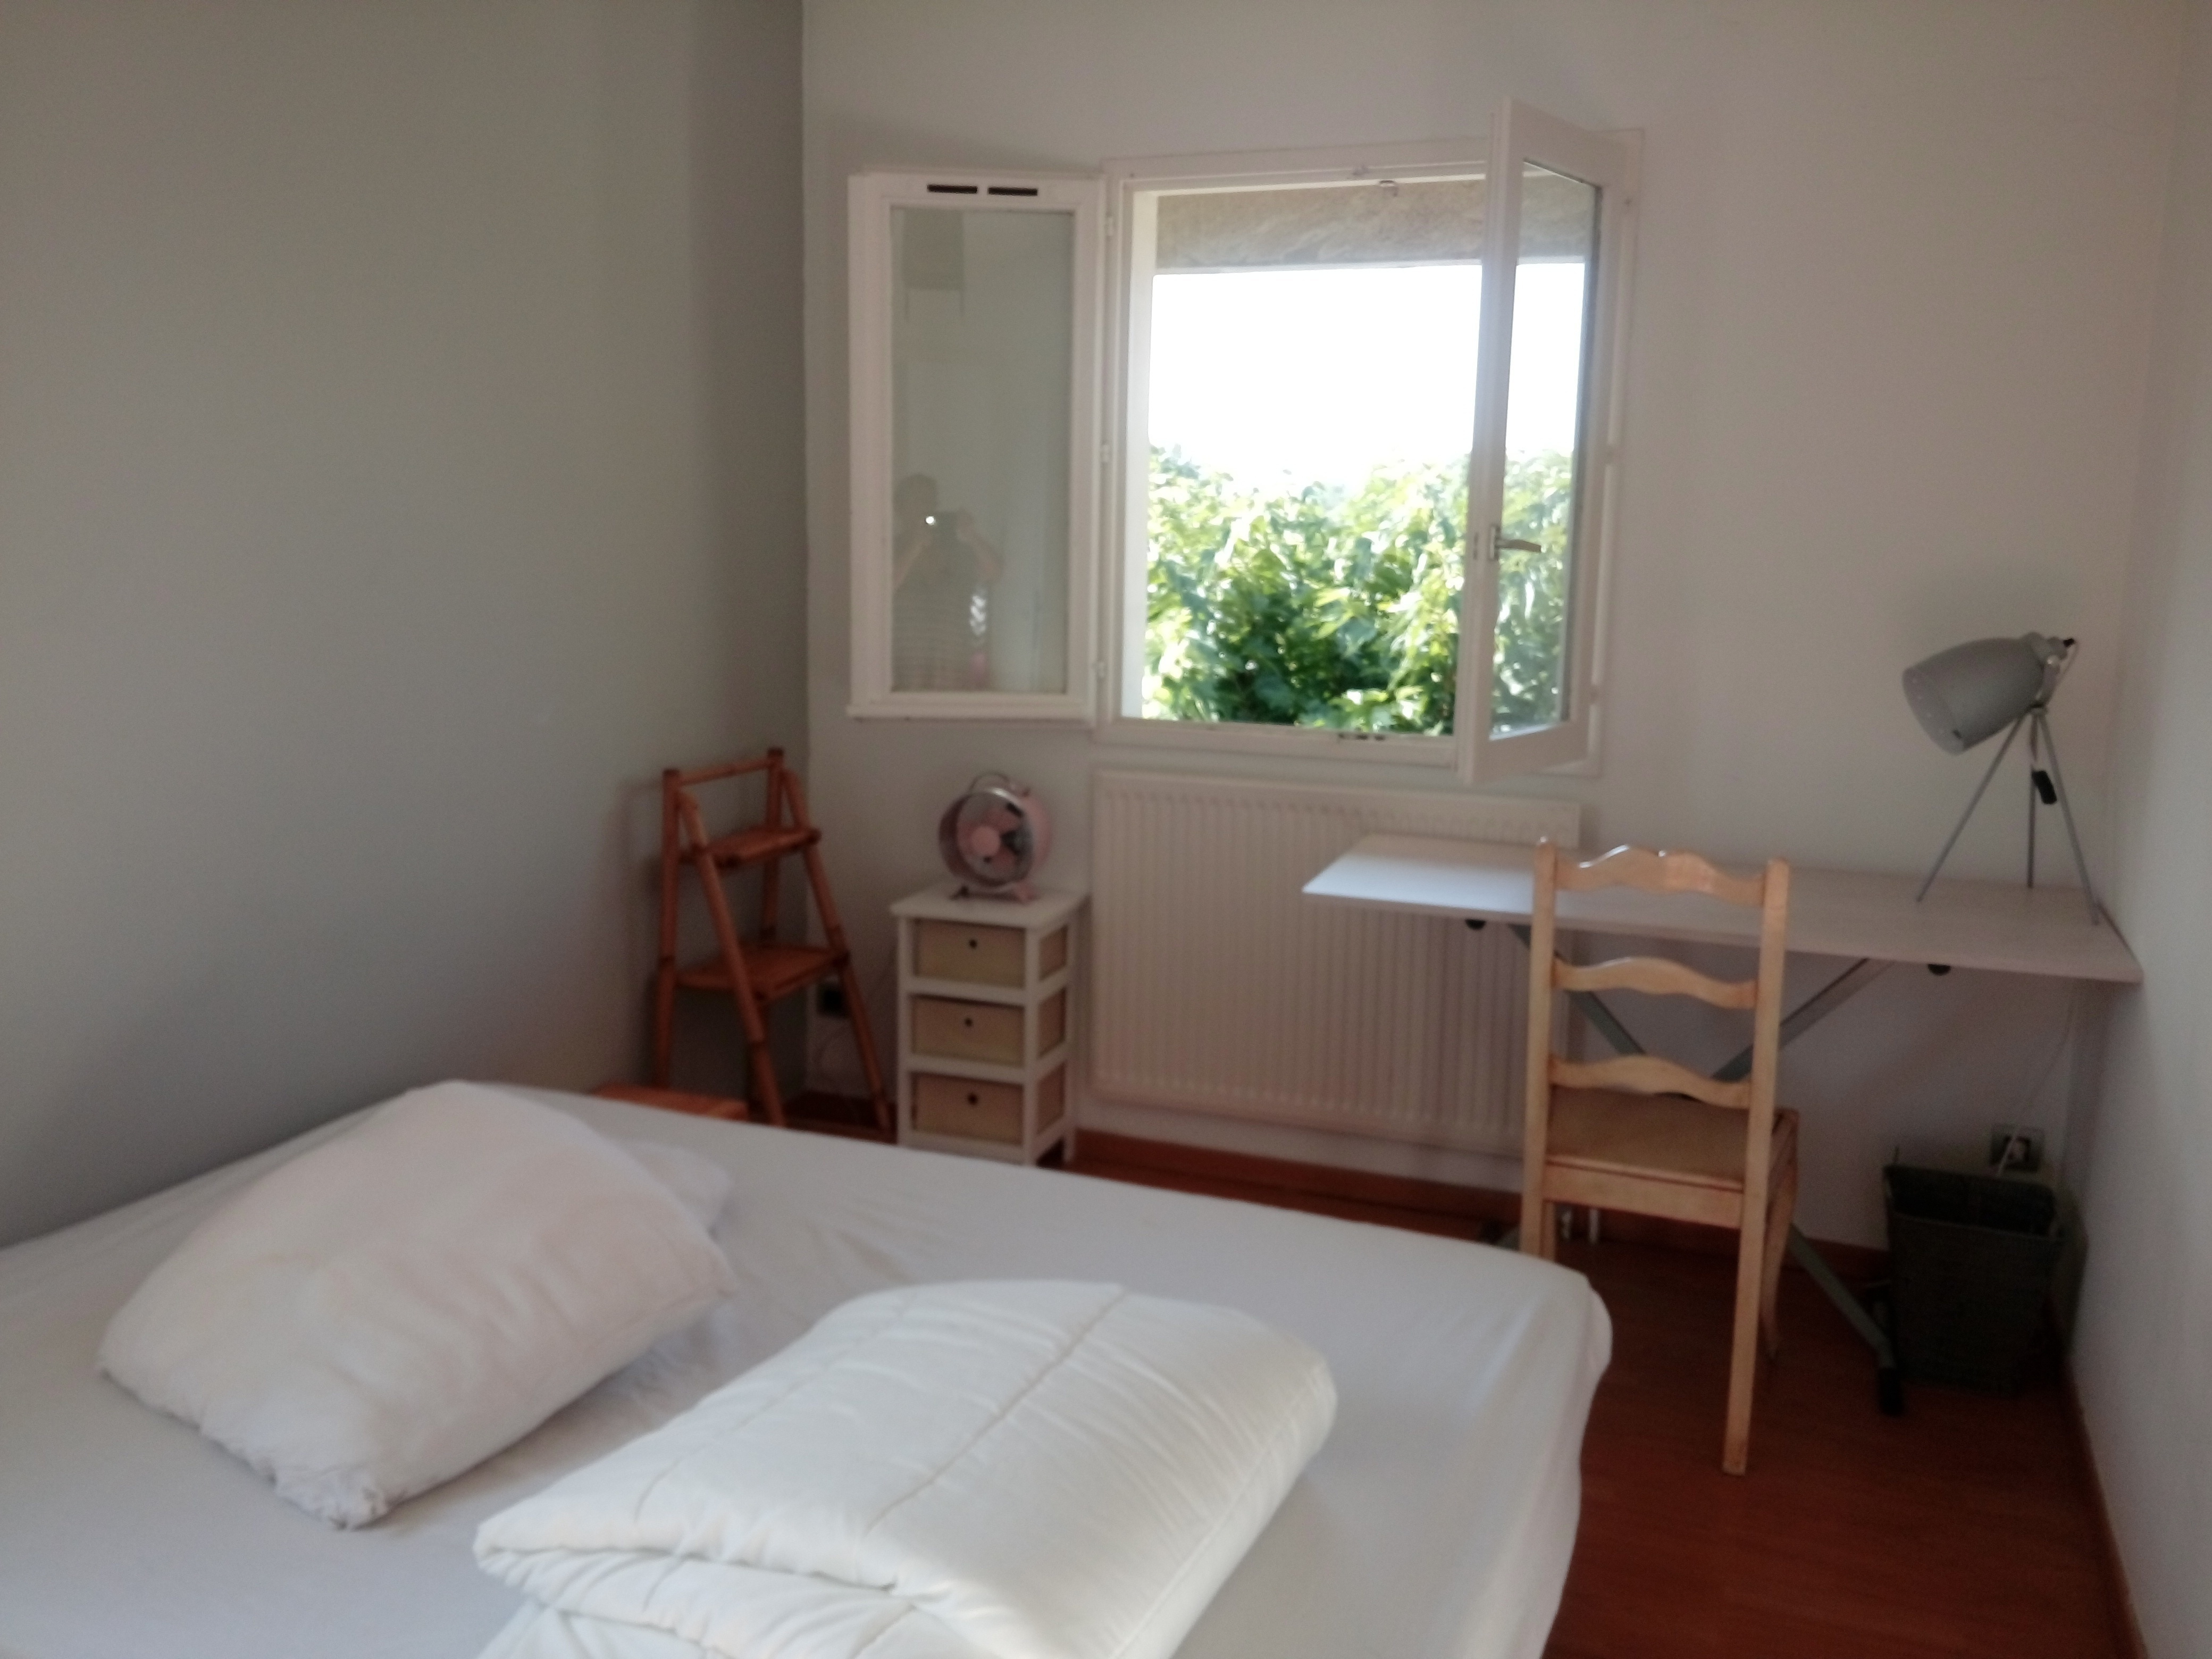 Homestays / Spare room rentals